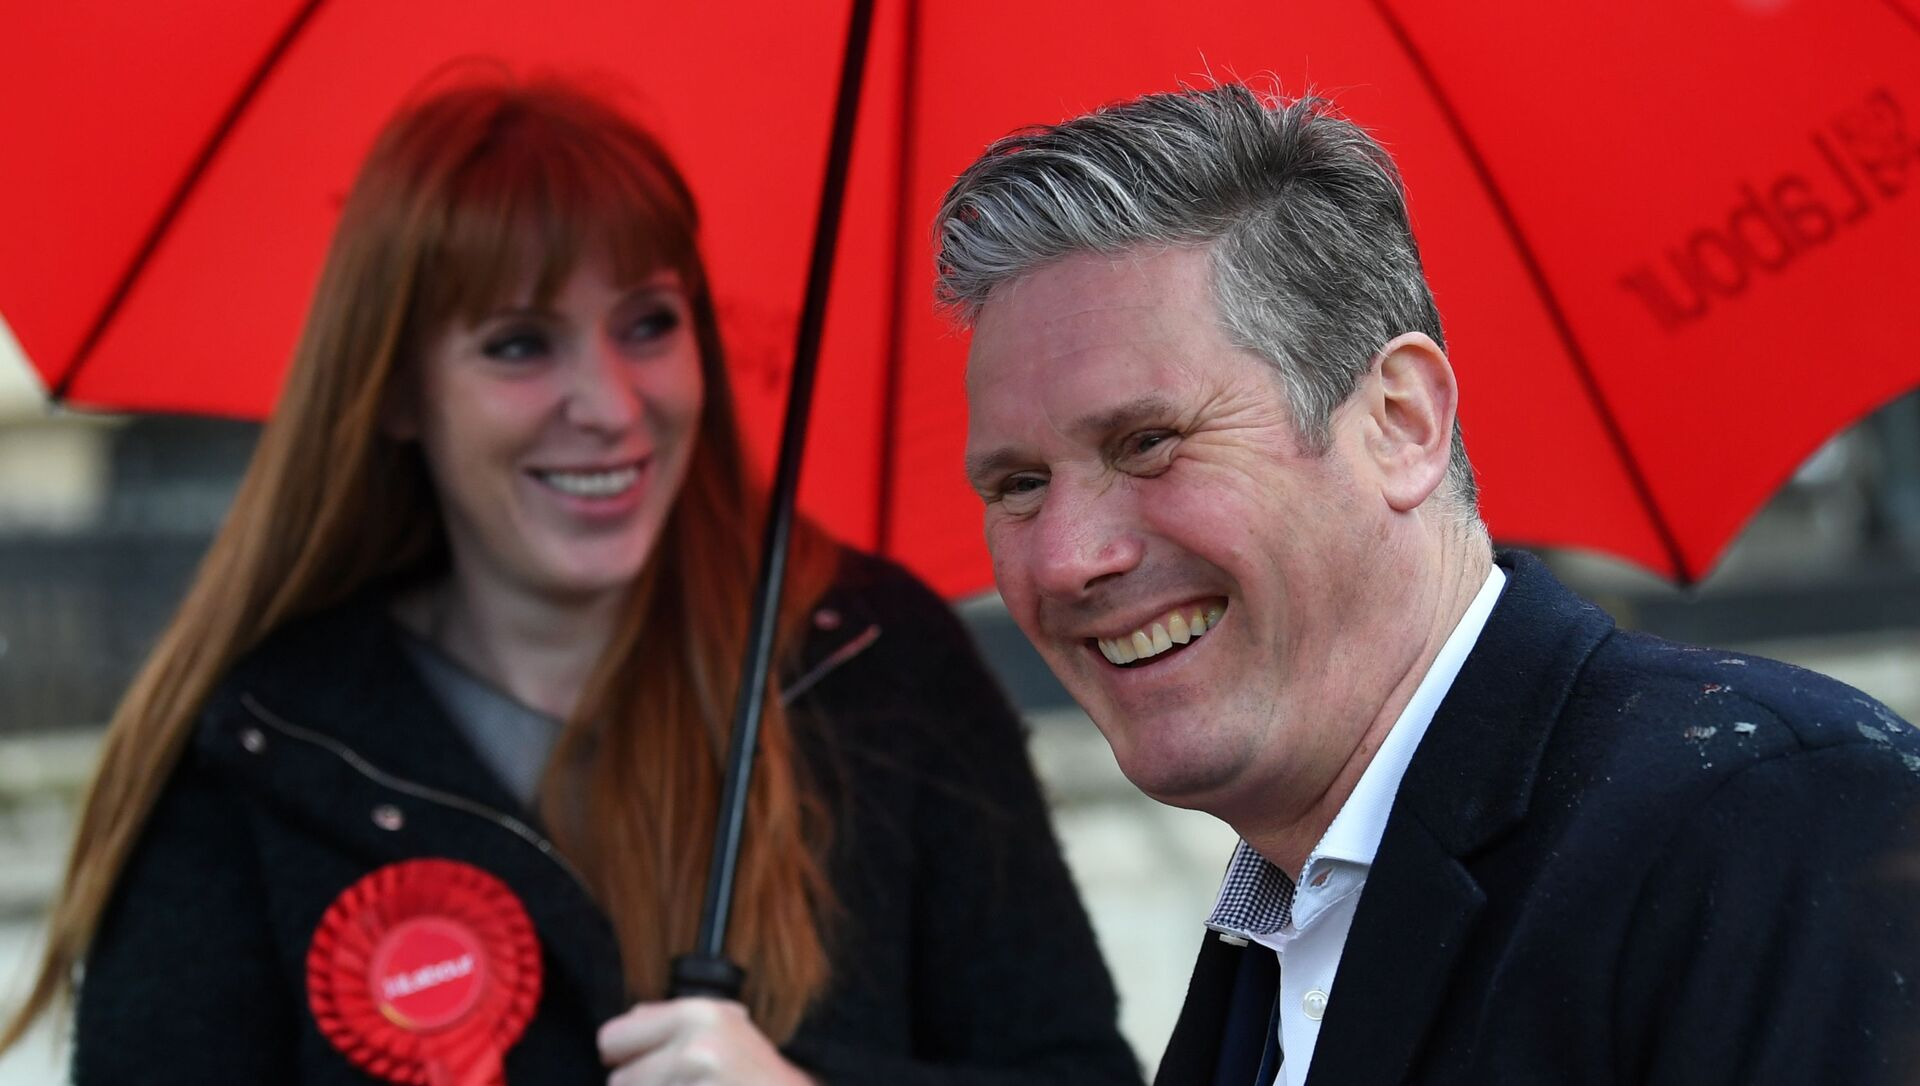 Labour Party leader Keir Starmer campaigns ahead of local elections, in Birmingham - Sputnik International, 1920, 12.05.2021